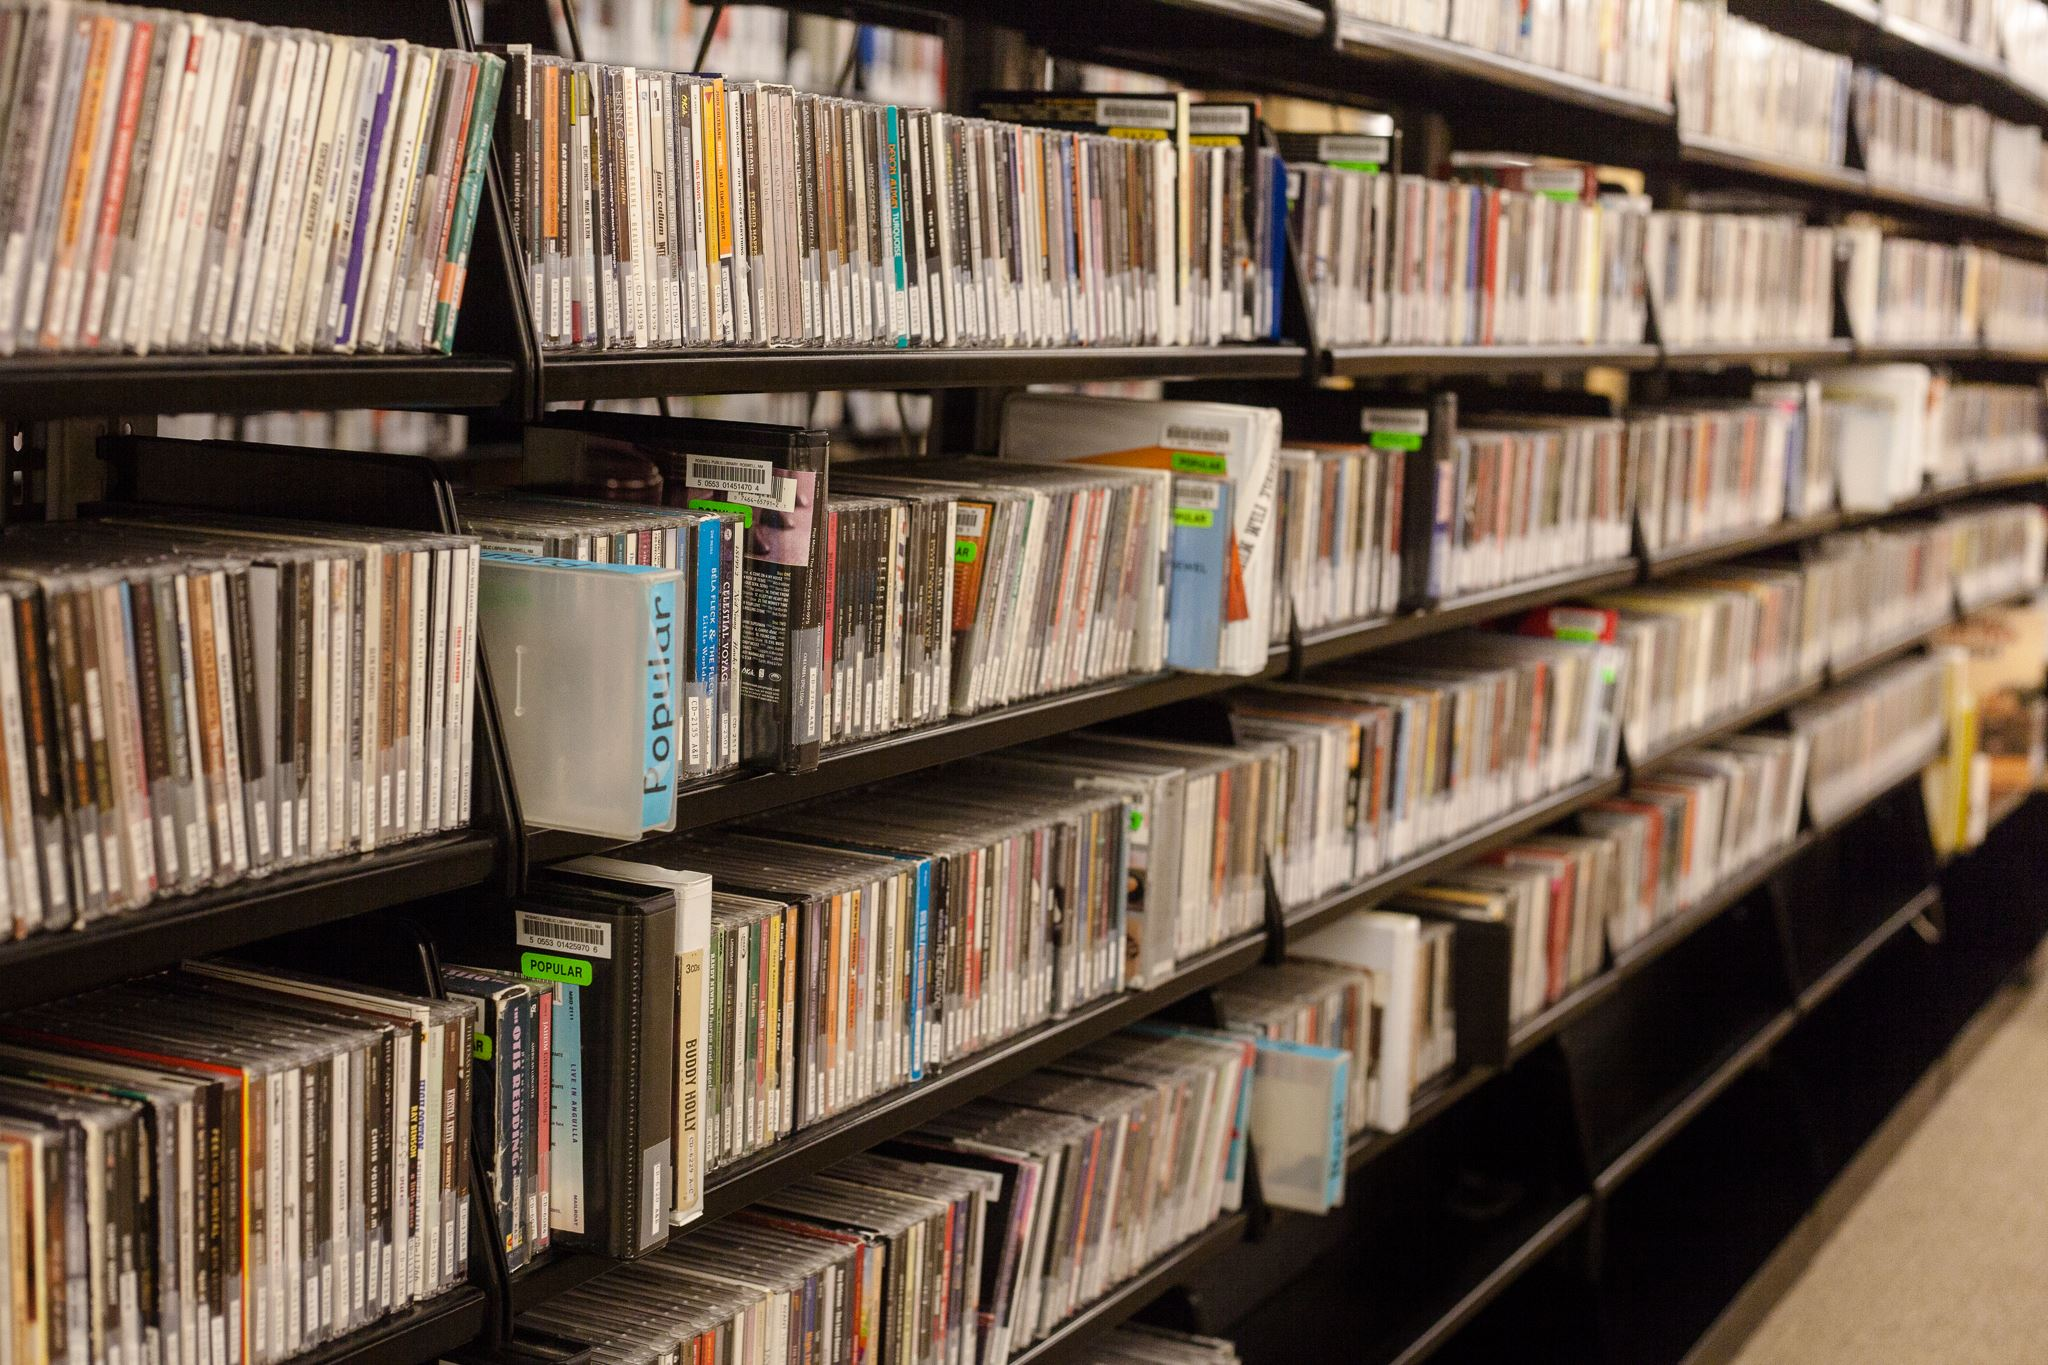 Music CD collection